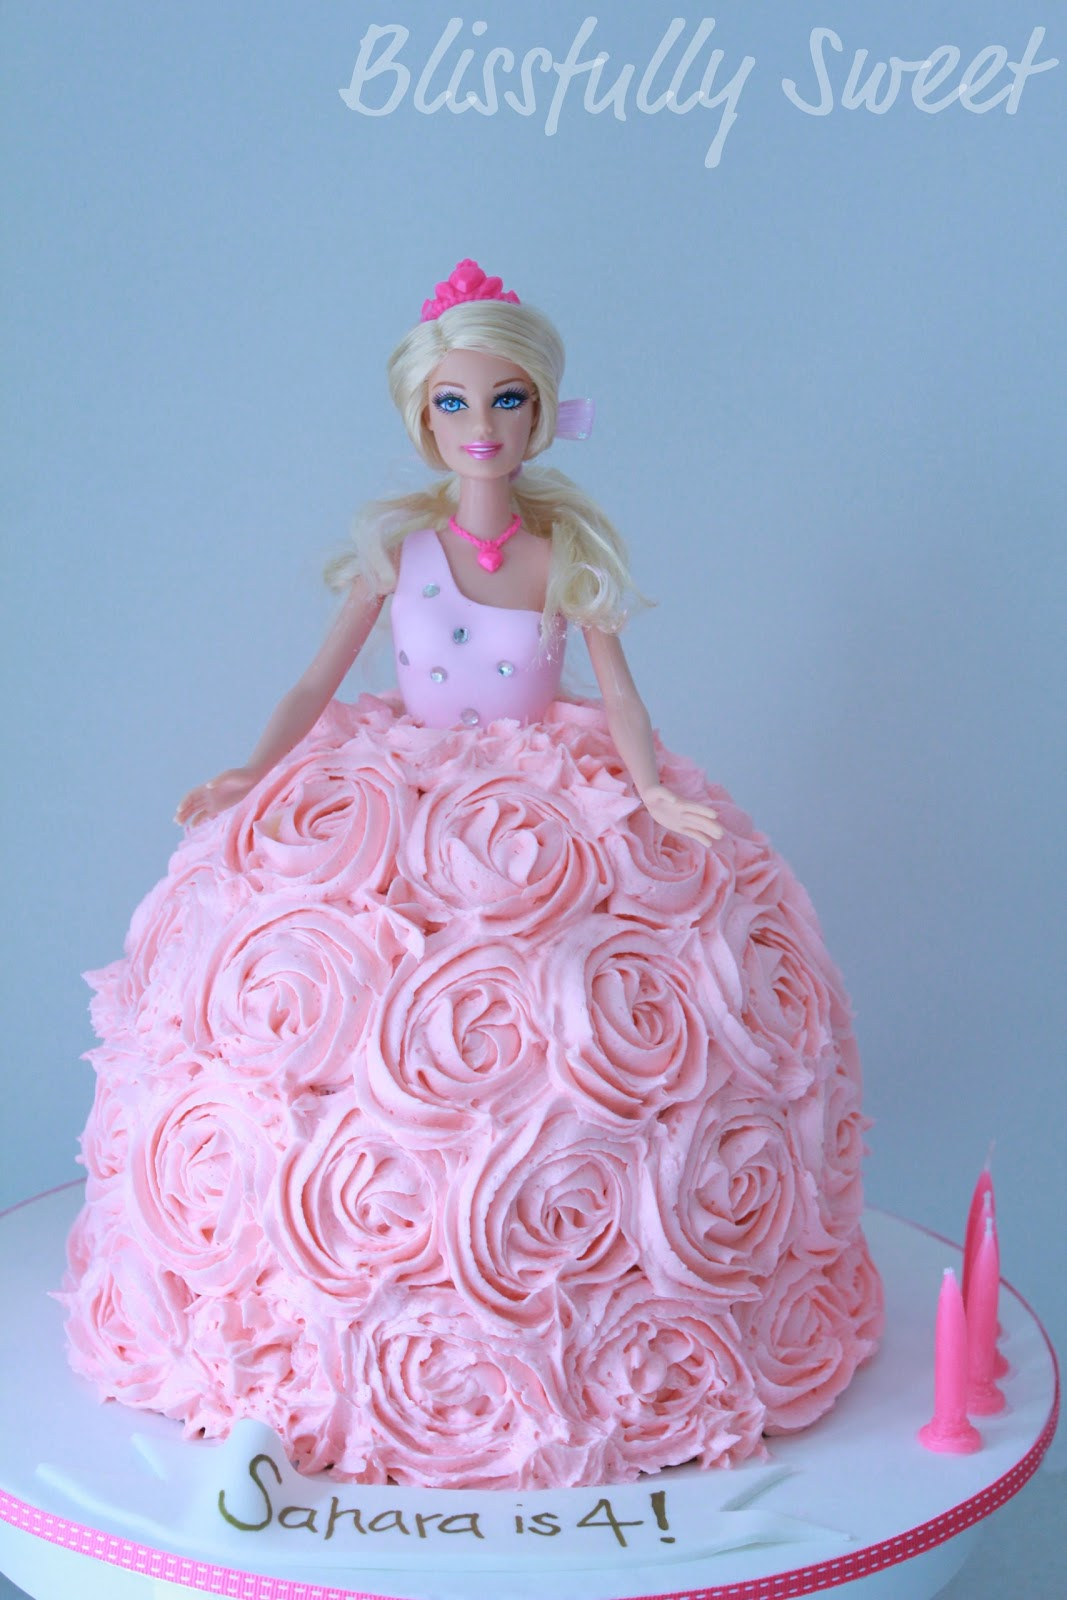 Images Of Barbie Birthday Cake : Blissfully Sweet: A Barbie Buttercream Birthday Cake